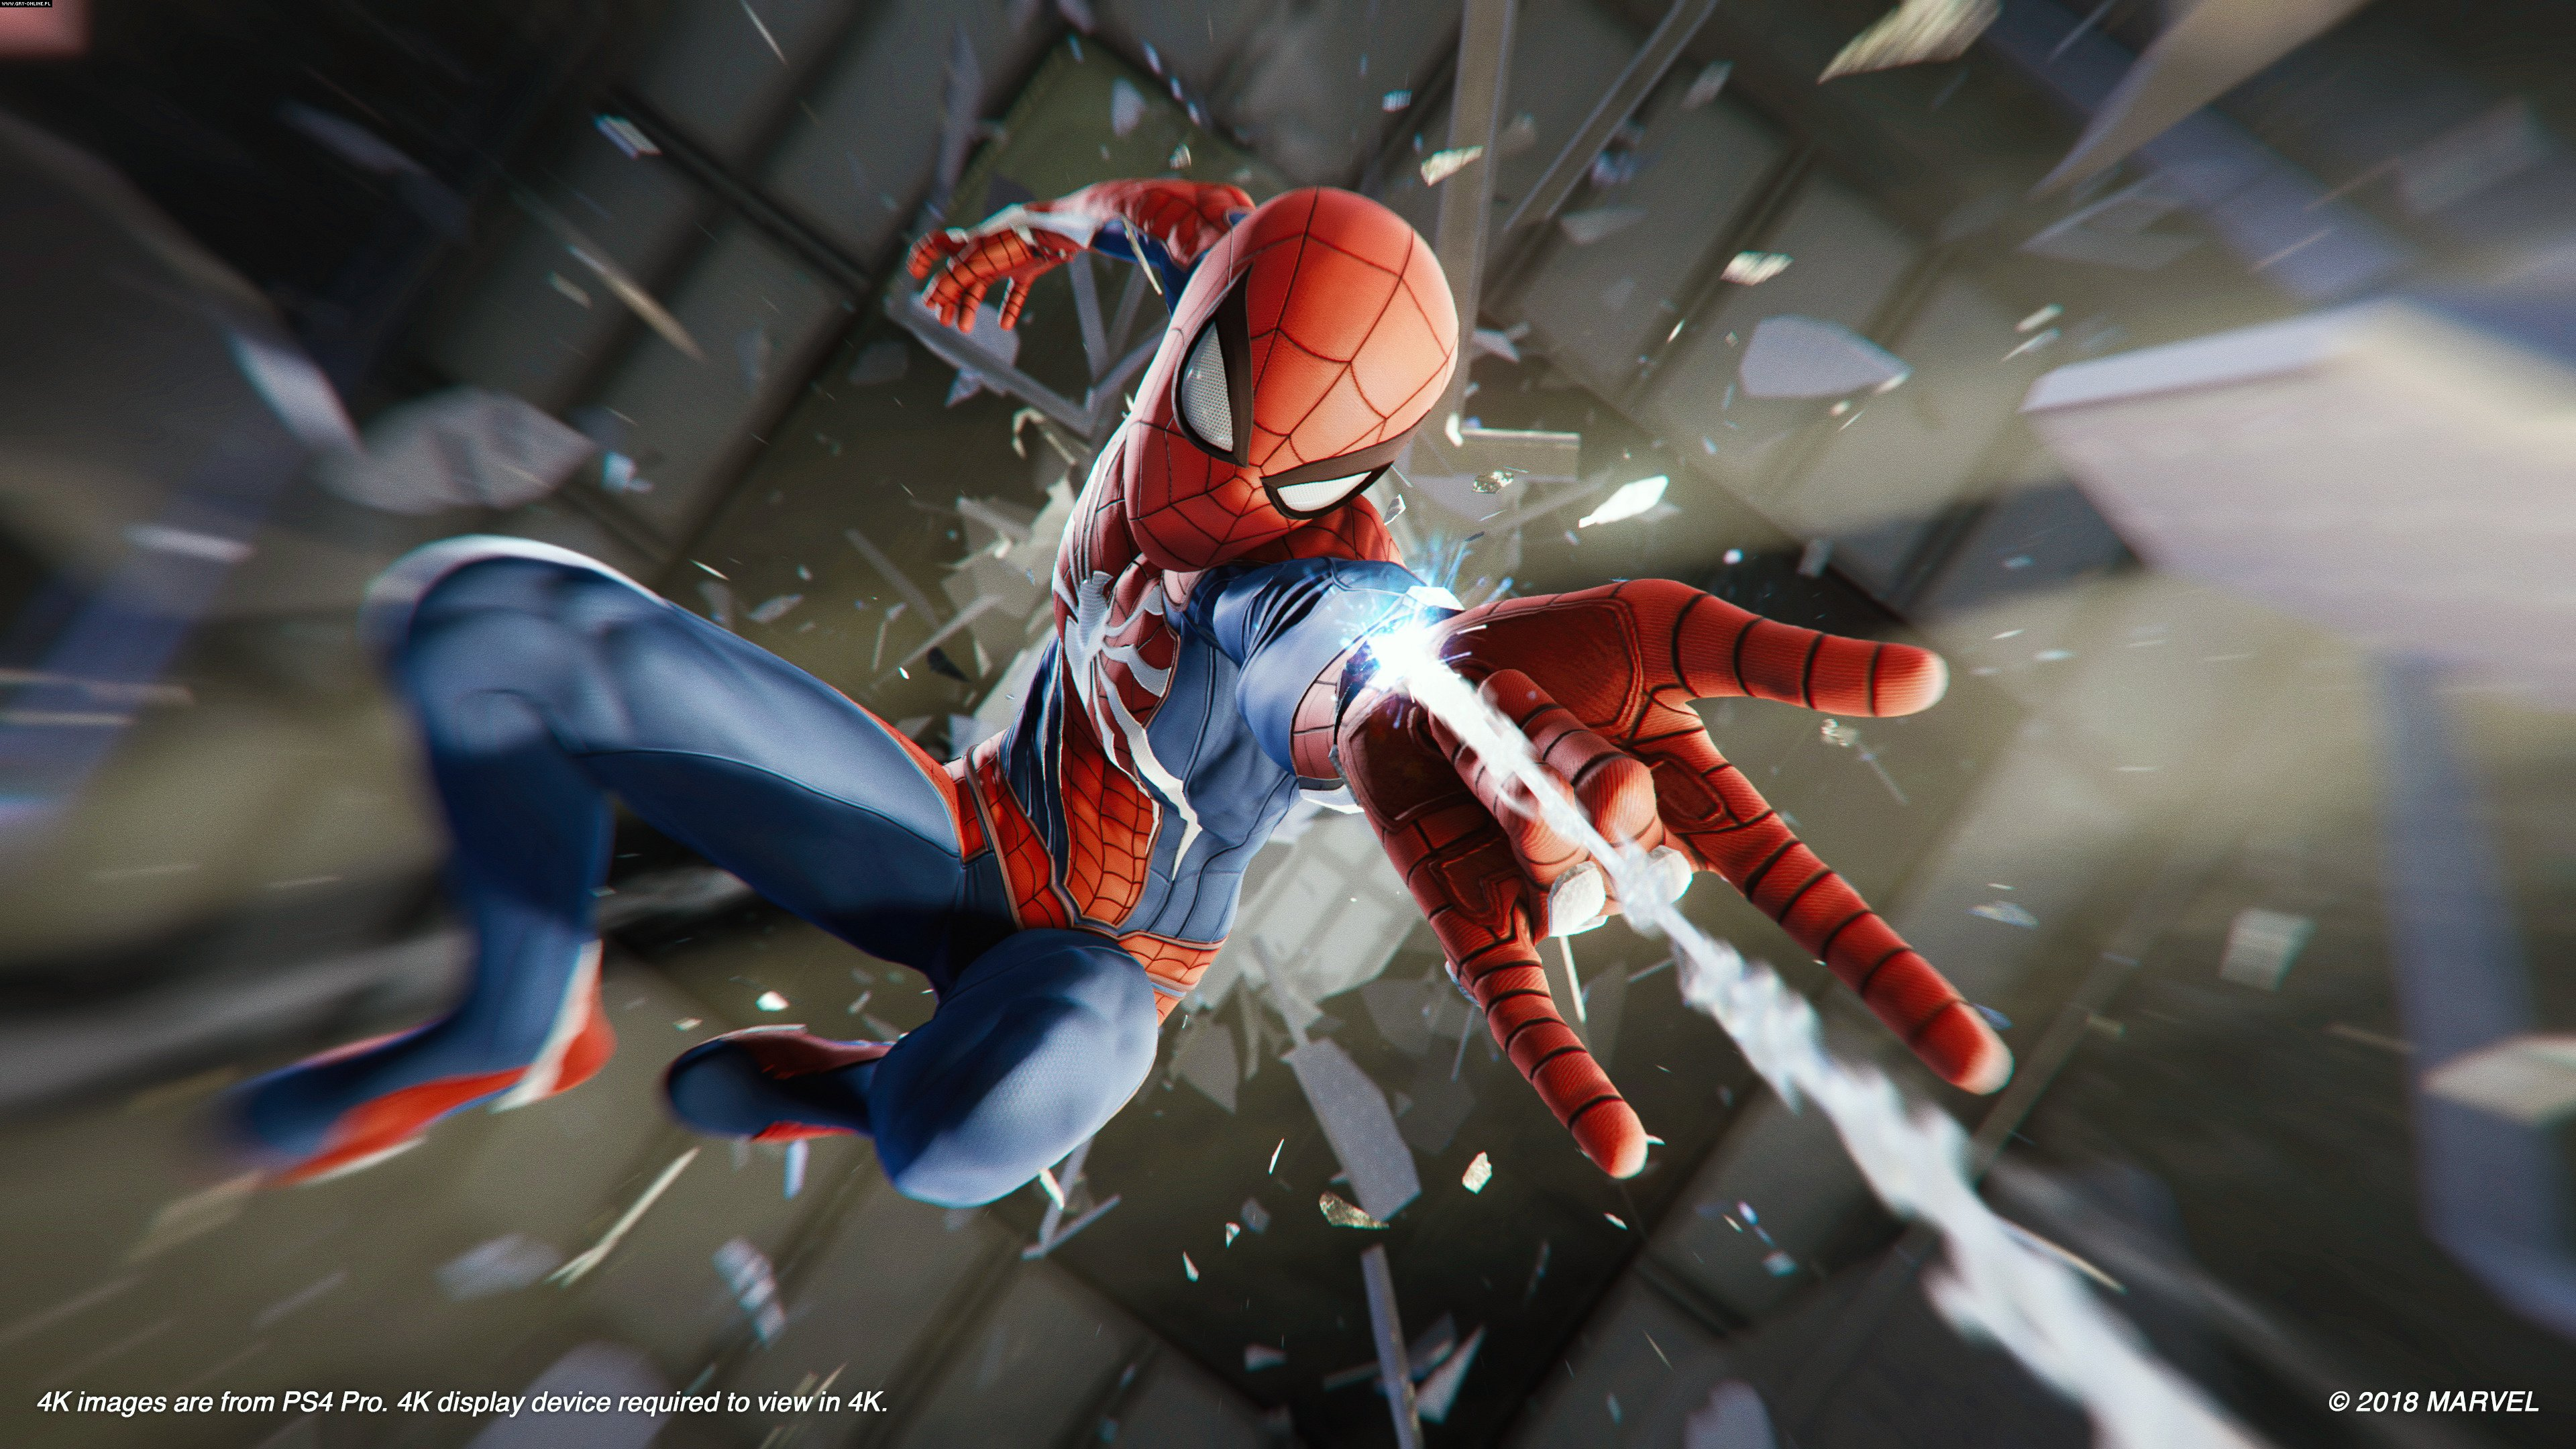 Spider-Man PS4 Games Image 1/37, Insomniac Games, Sony Interactive Entertainment